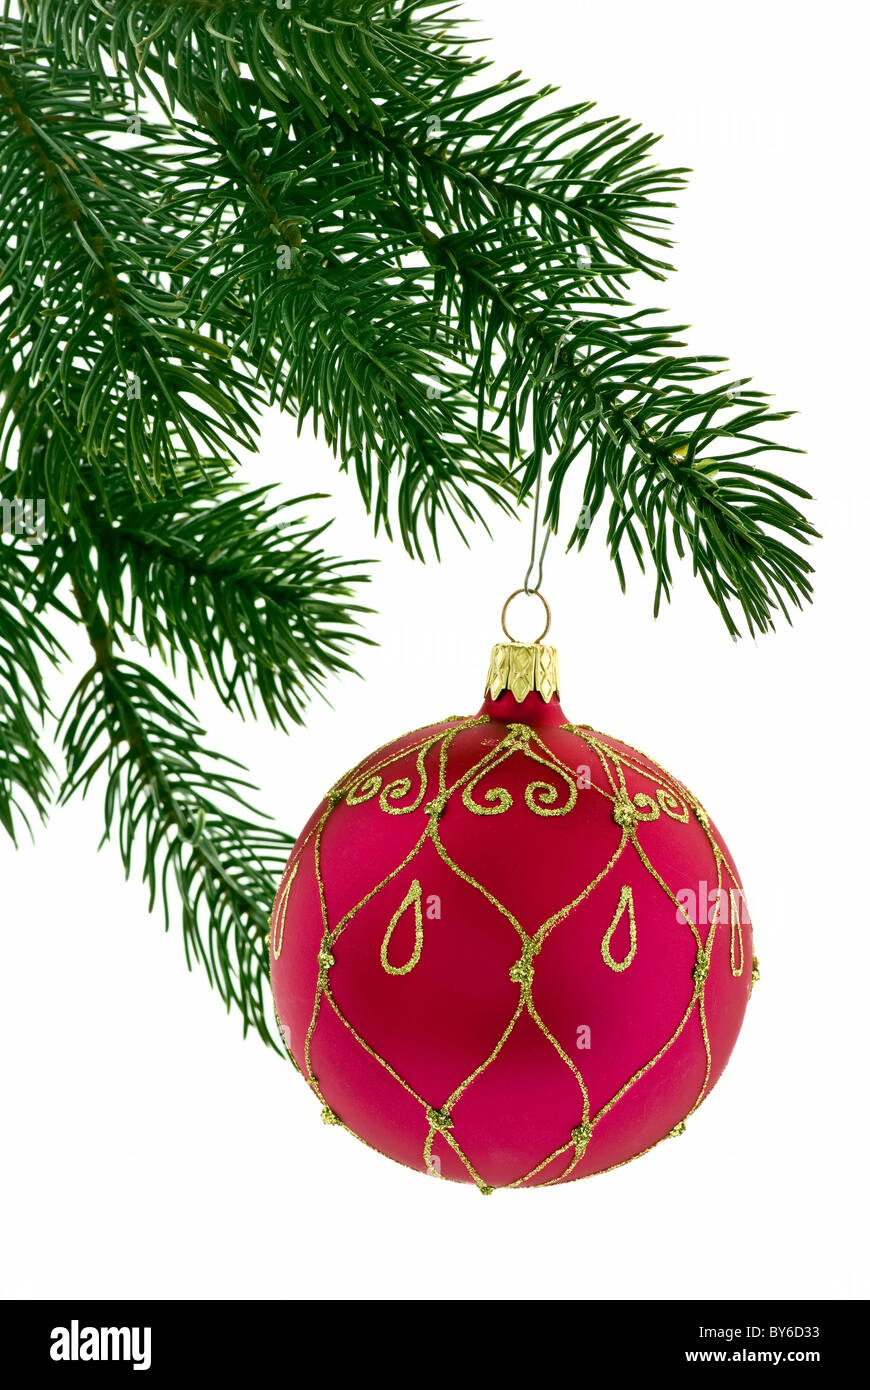 Christmas bauble as closeup on christmas tree on white background - Stock Image